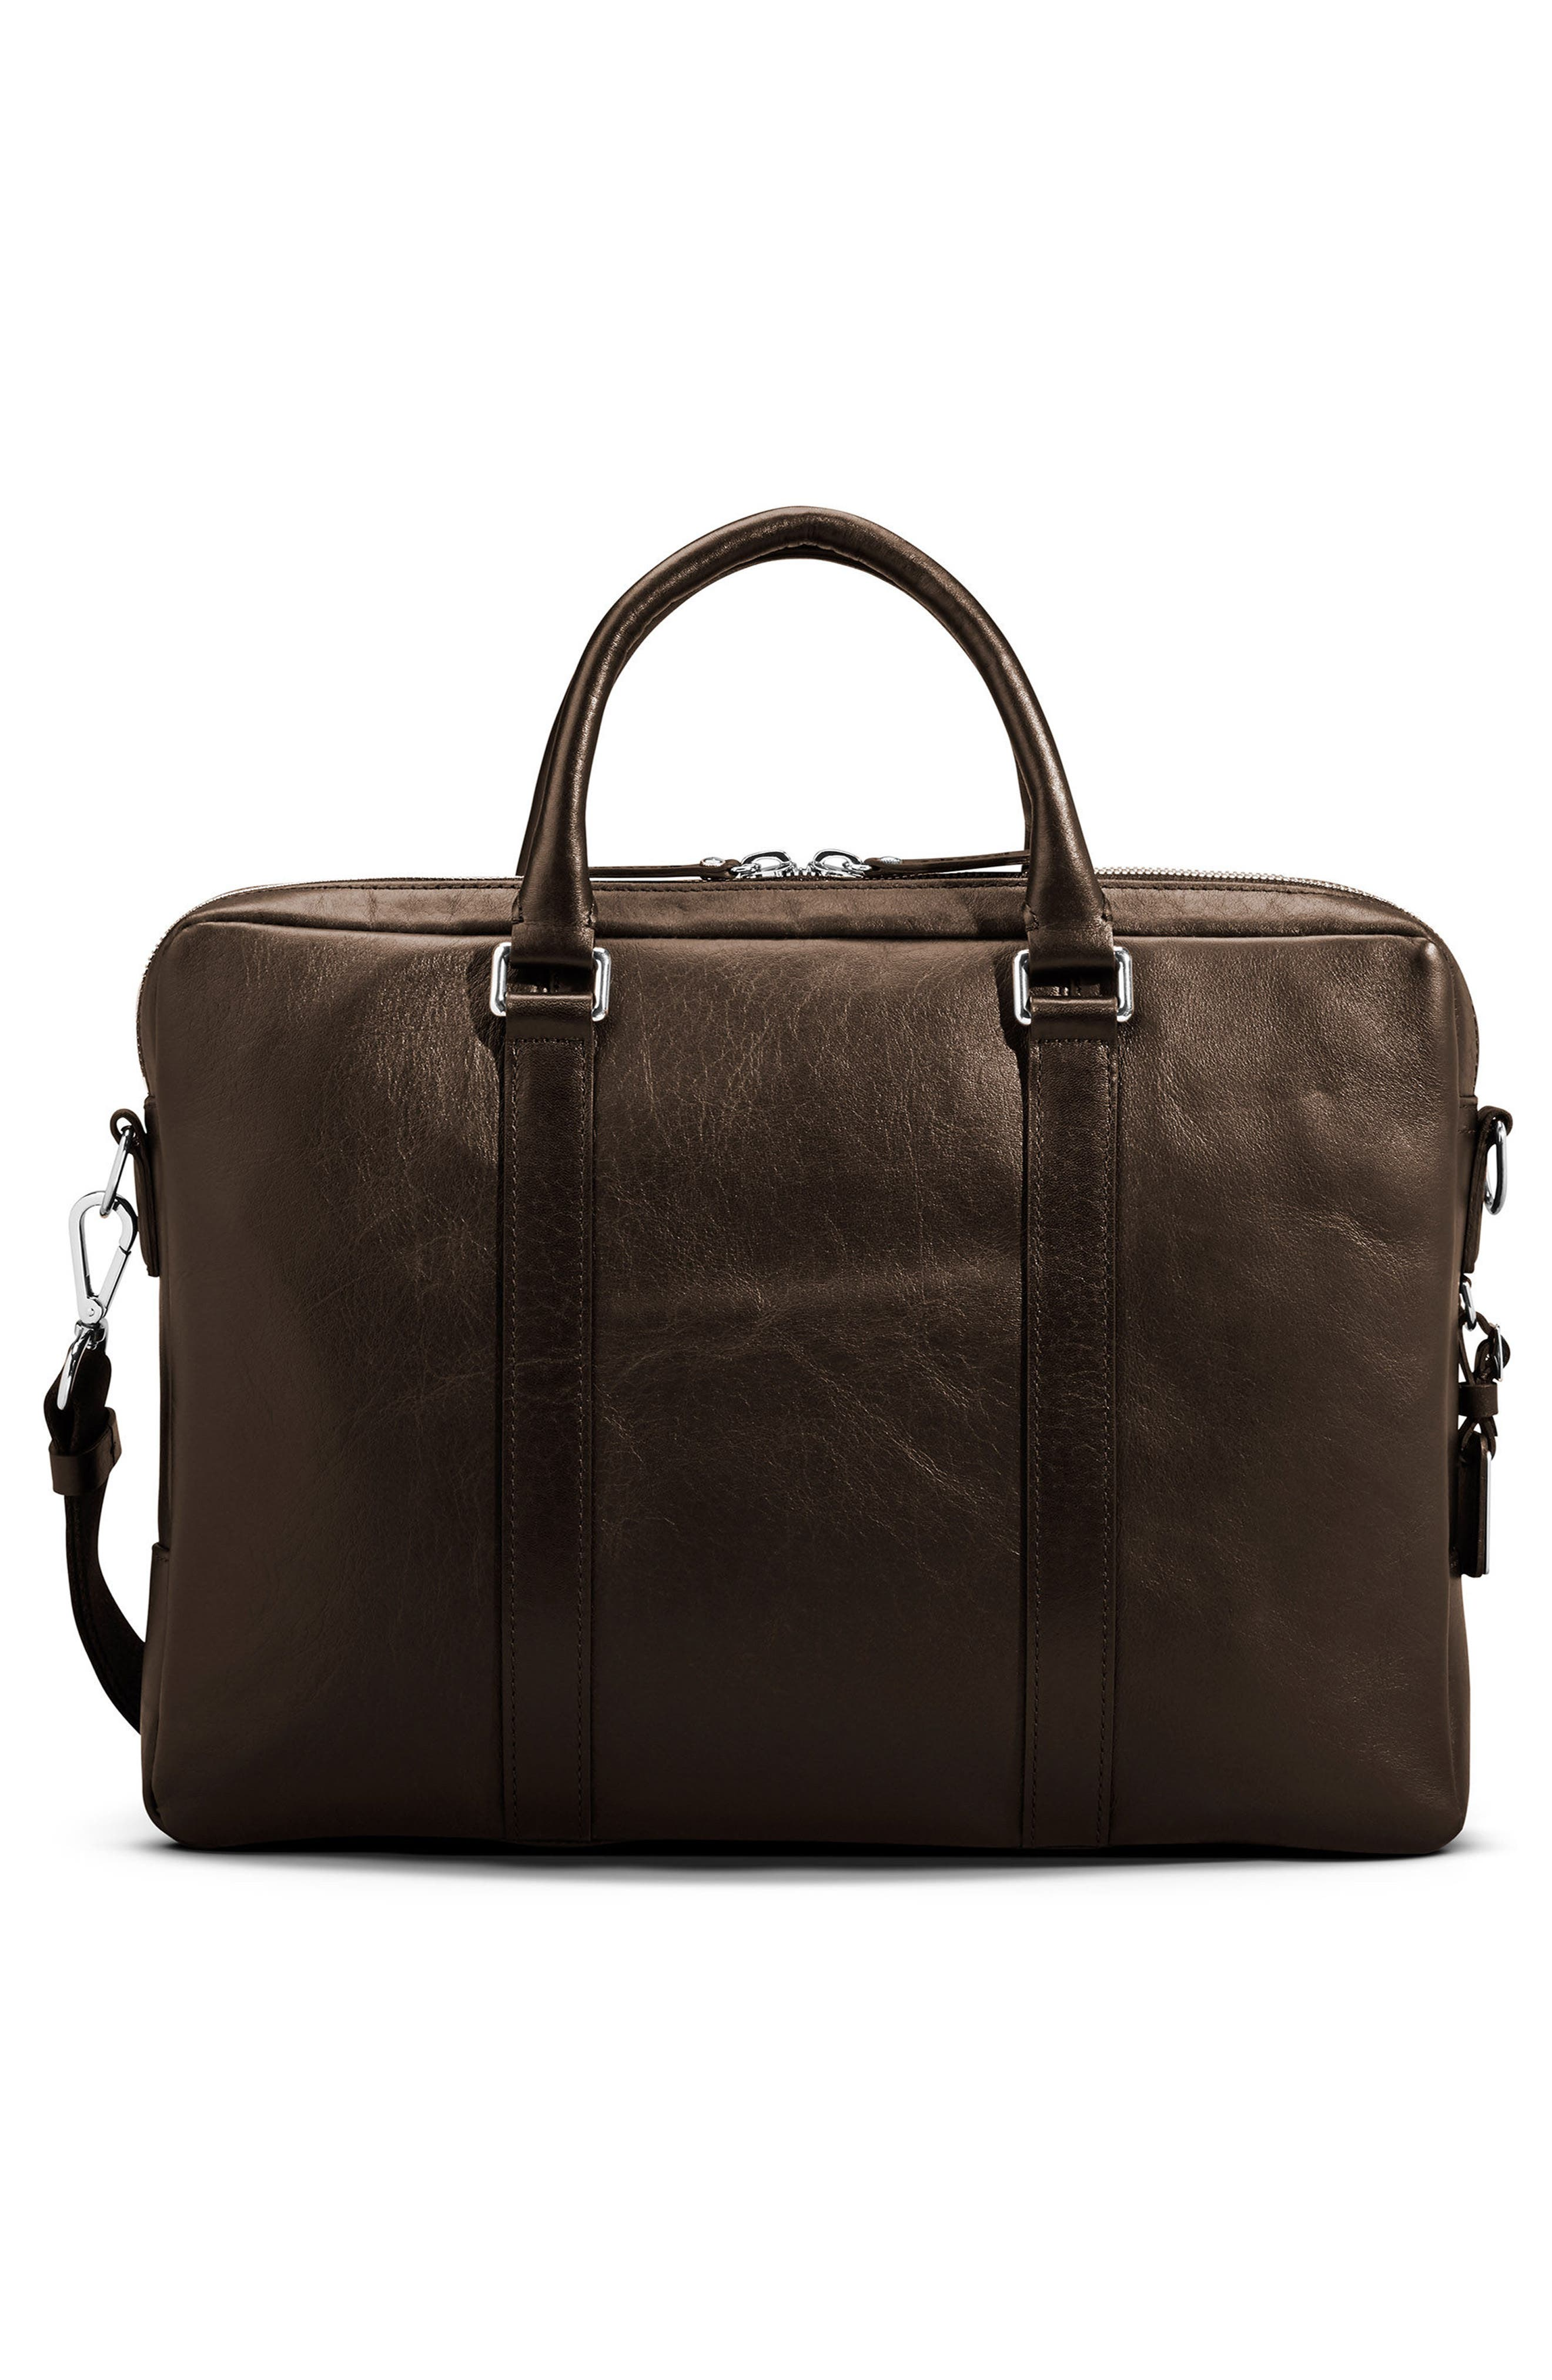 SHINOLA, Signature Leather Computer Briefcase, Alternate thumbnail 2, color, DEEP BROWN